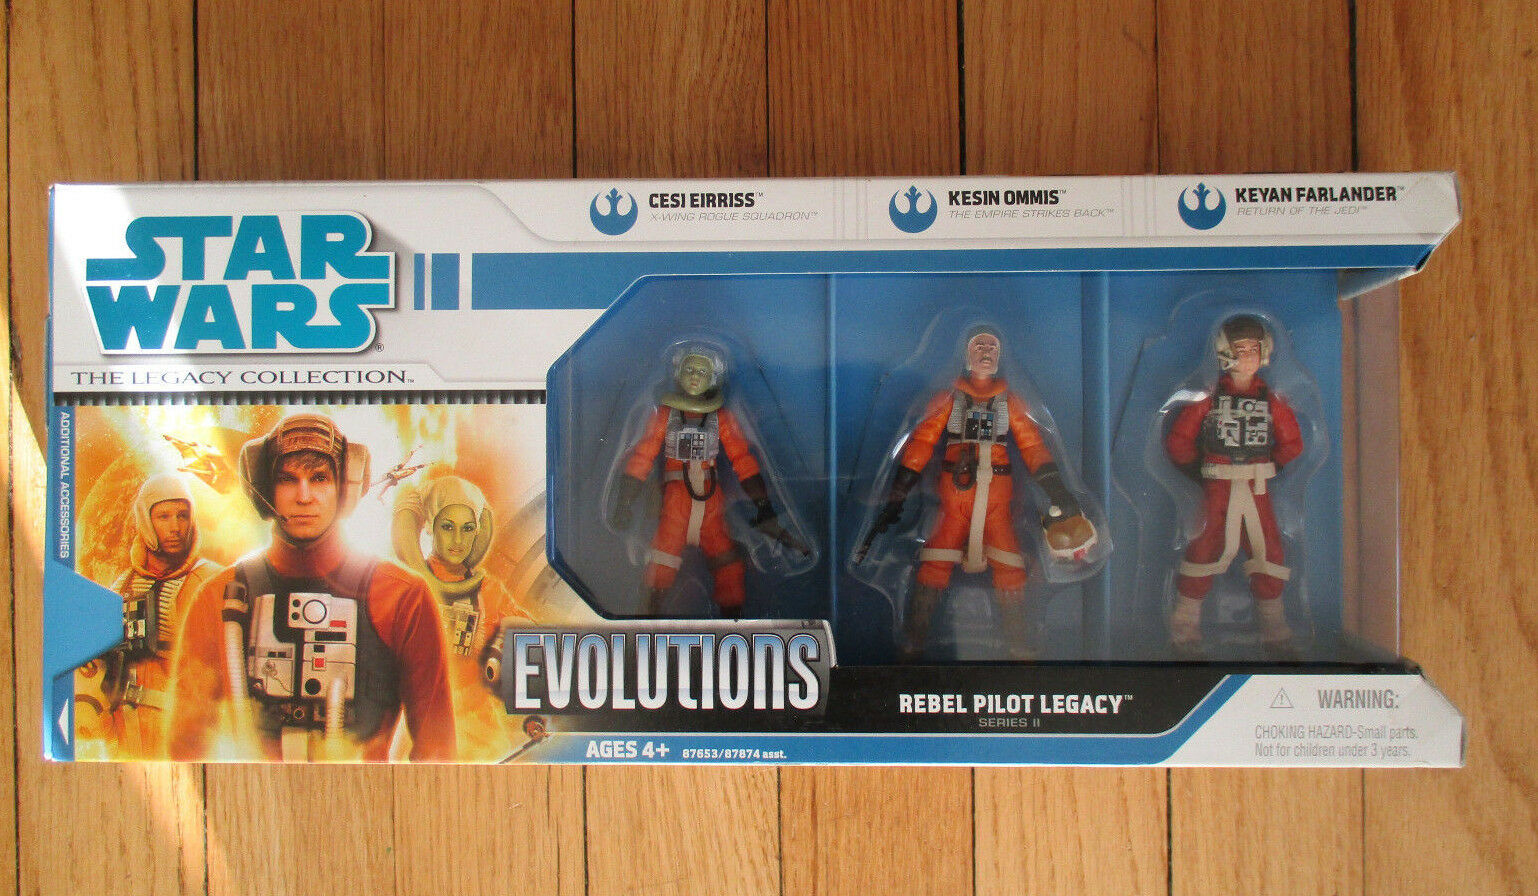 Star Wars Evolutions REBEL PILOT LEGACY Cesi Eirriss Kesin Ommis Keyan Farlander